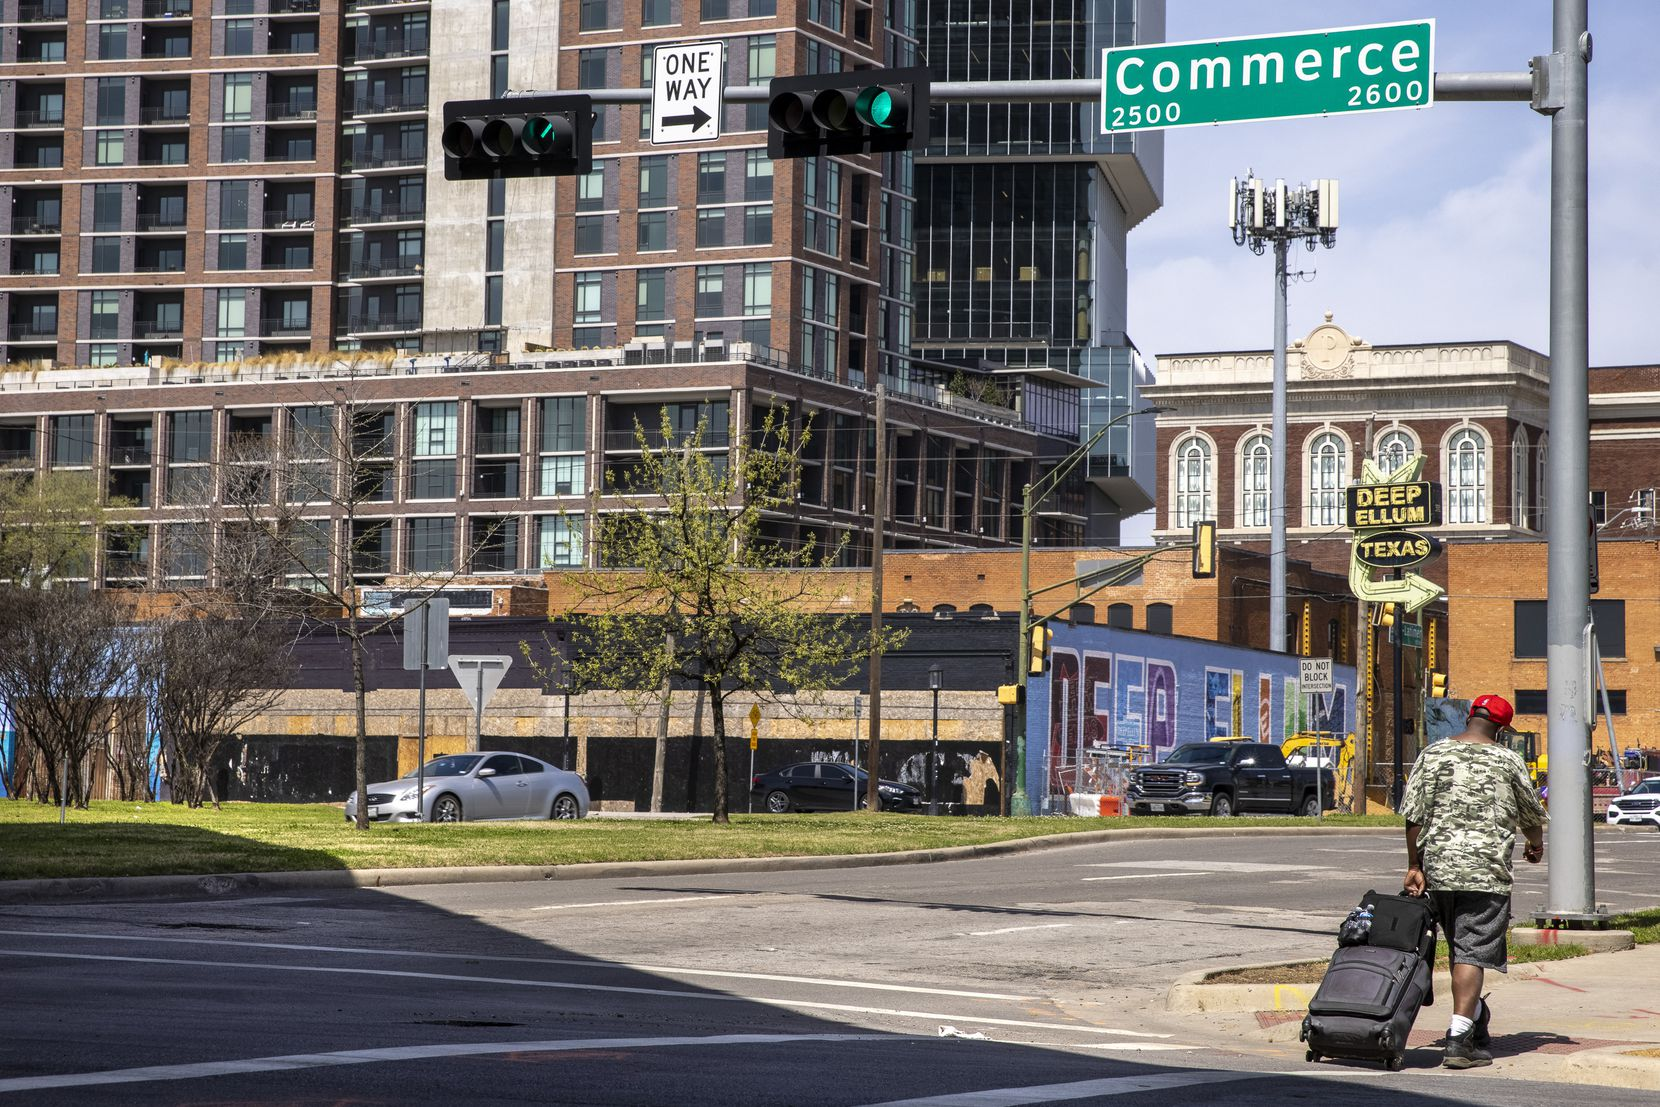 Commerce Street in the Deep Ellum neighborhood on Wednesday, March 24, 2021, in Dallas. City Council is considering a DART line that would run through Commerce Street. (Lynda M. González/The Dallas Morning News)